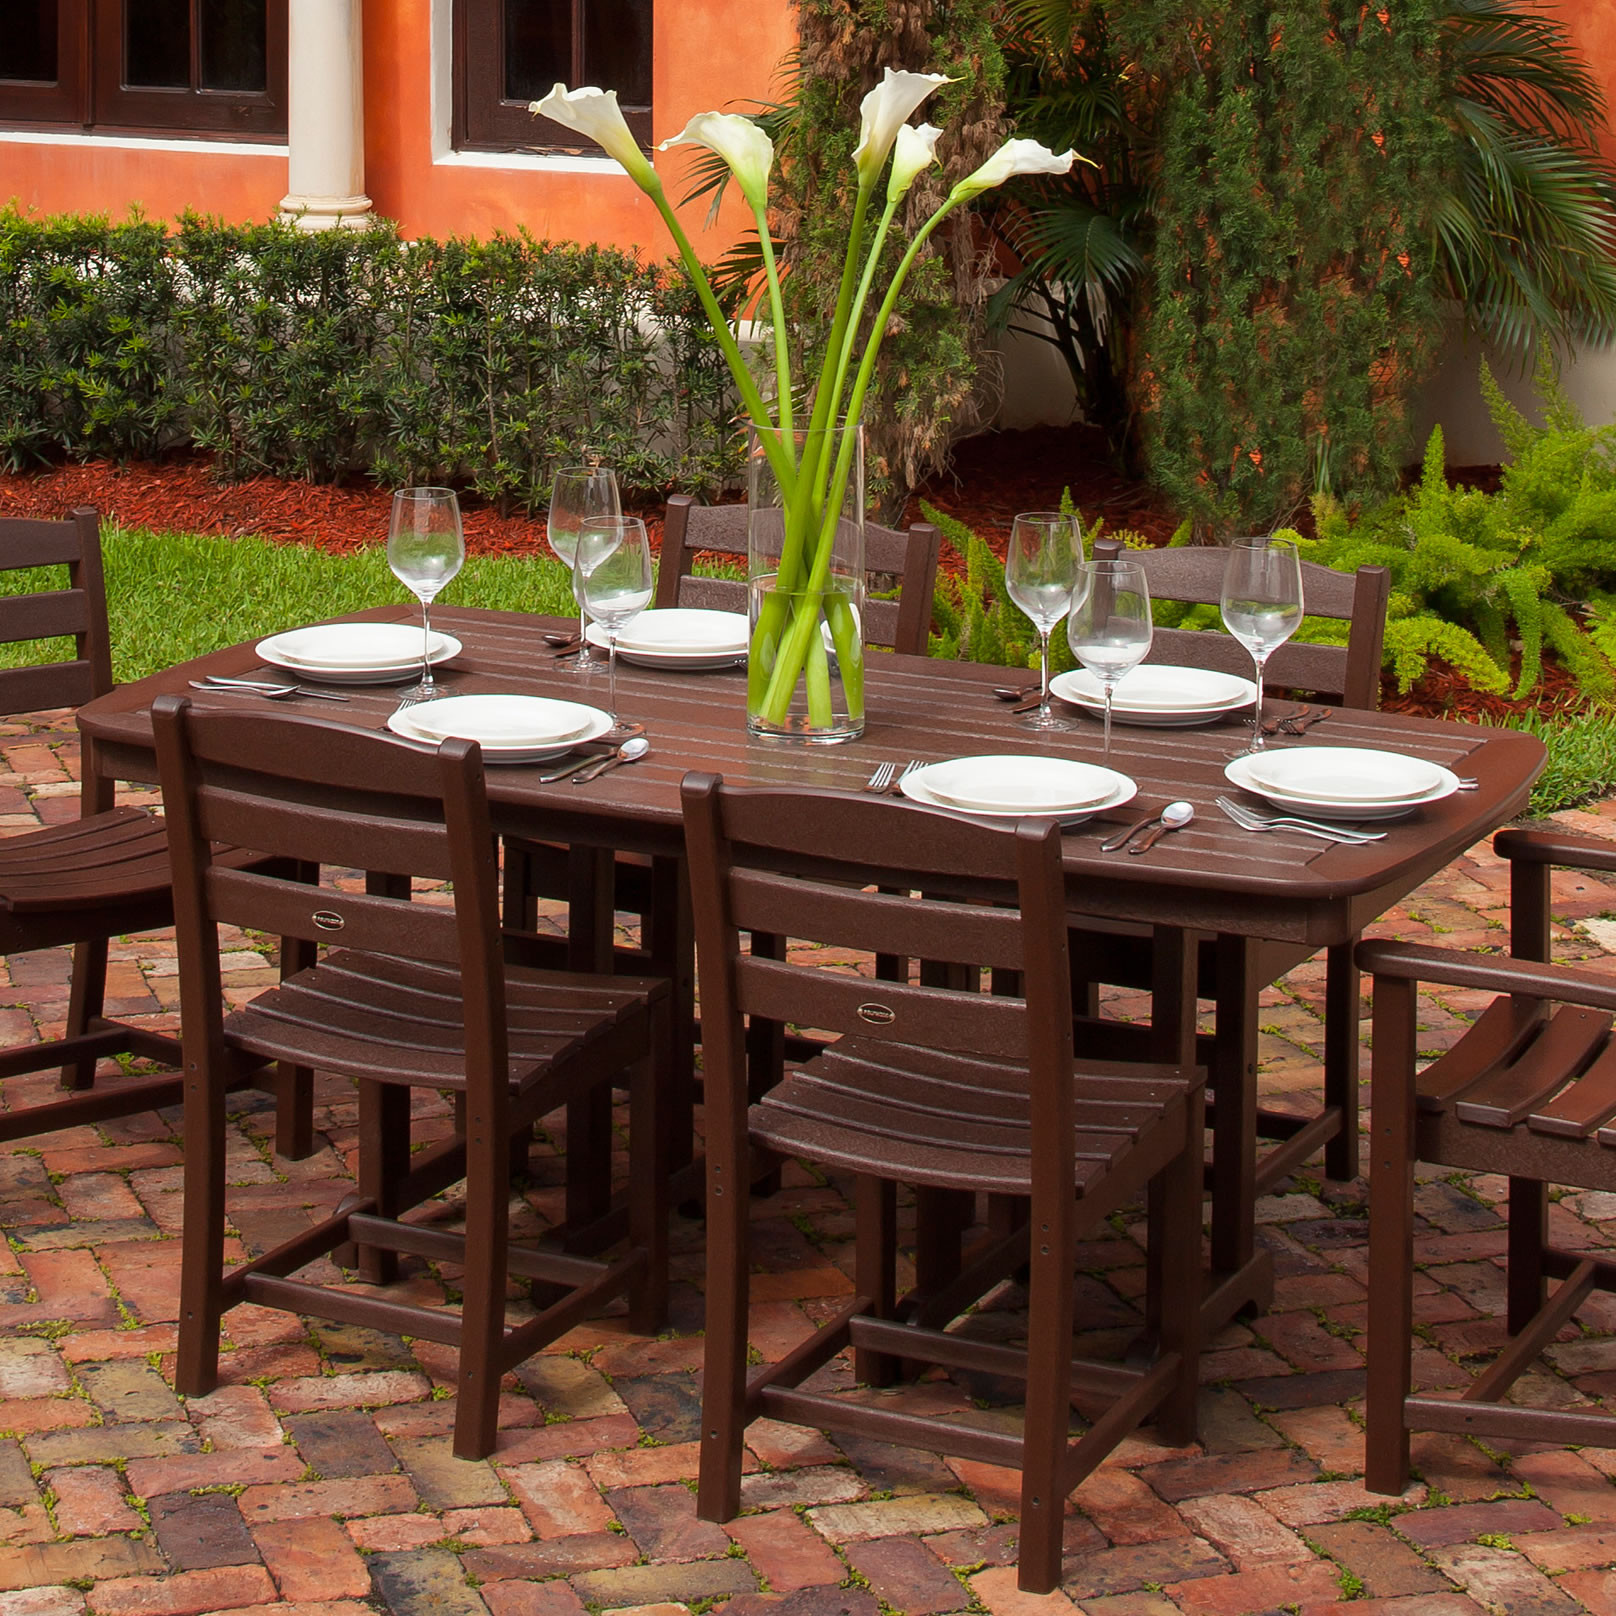 POLYWOOD Nautical 37 x 72 in Dining Table Nautical Collection POLYWOOD Outdoor Furniture